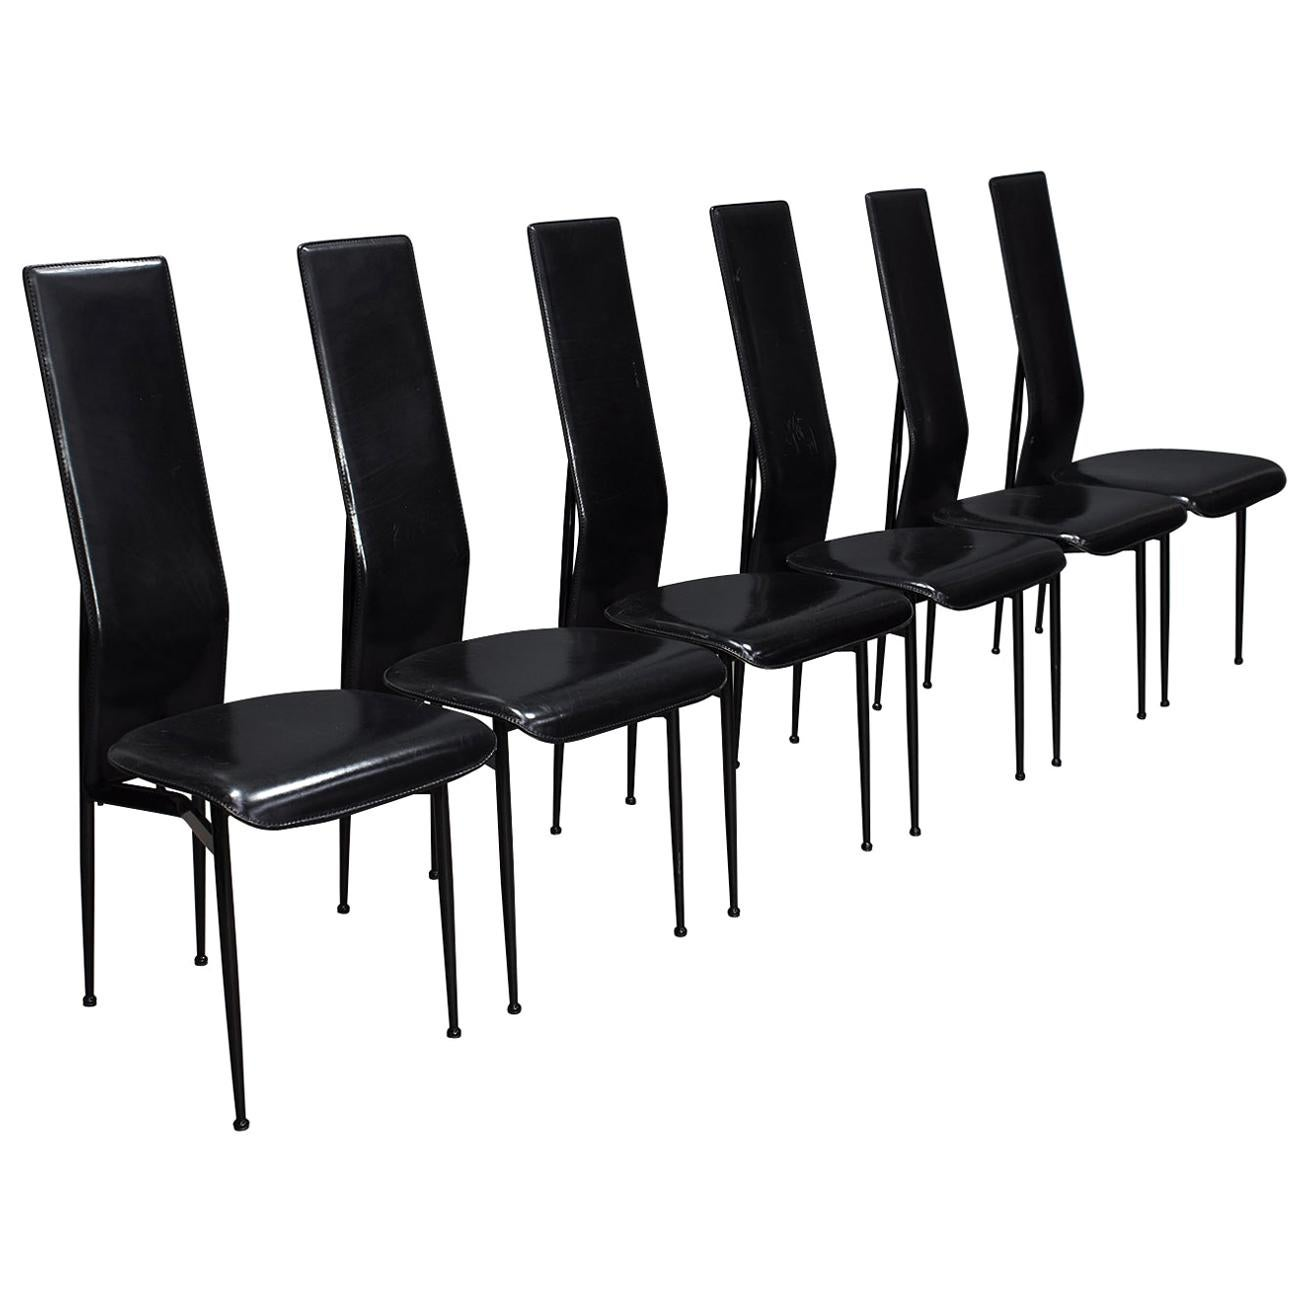 Six Fasem Dining Chairs by Vegni and Gualtierotti in Black Leather, Italy